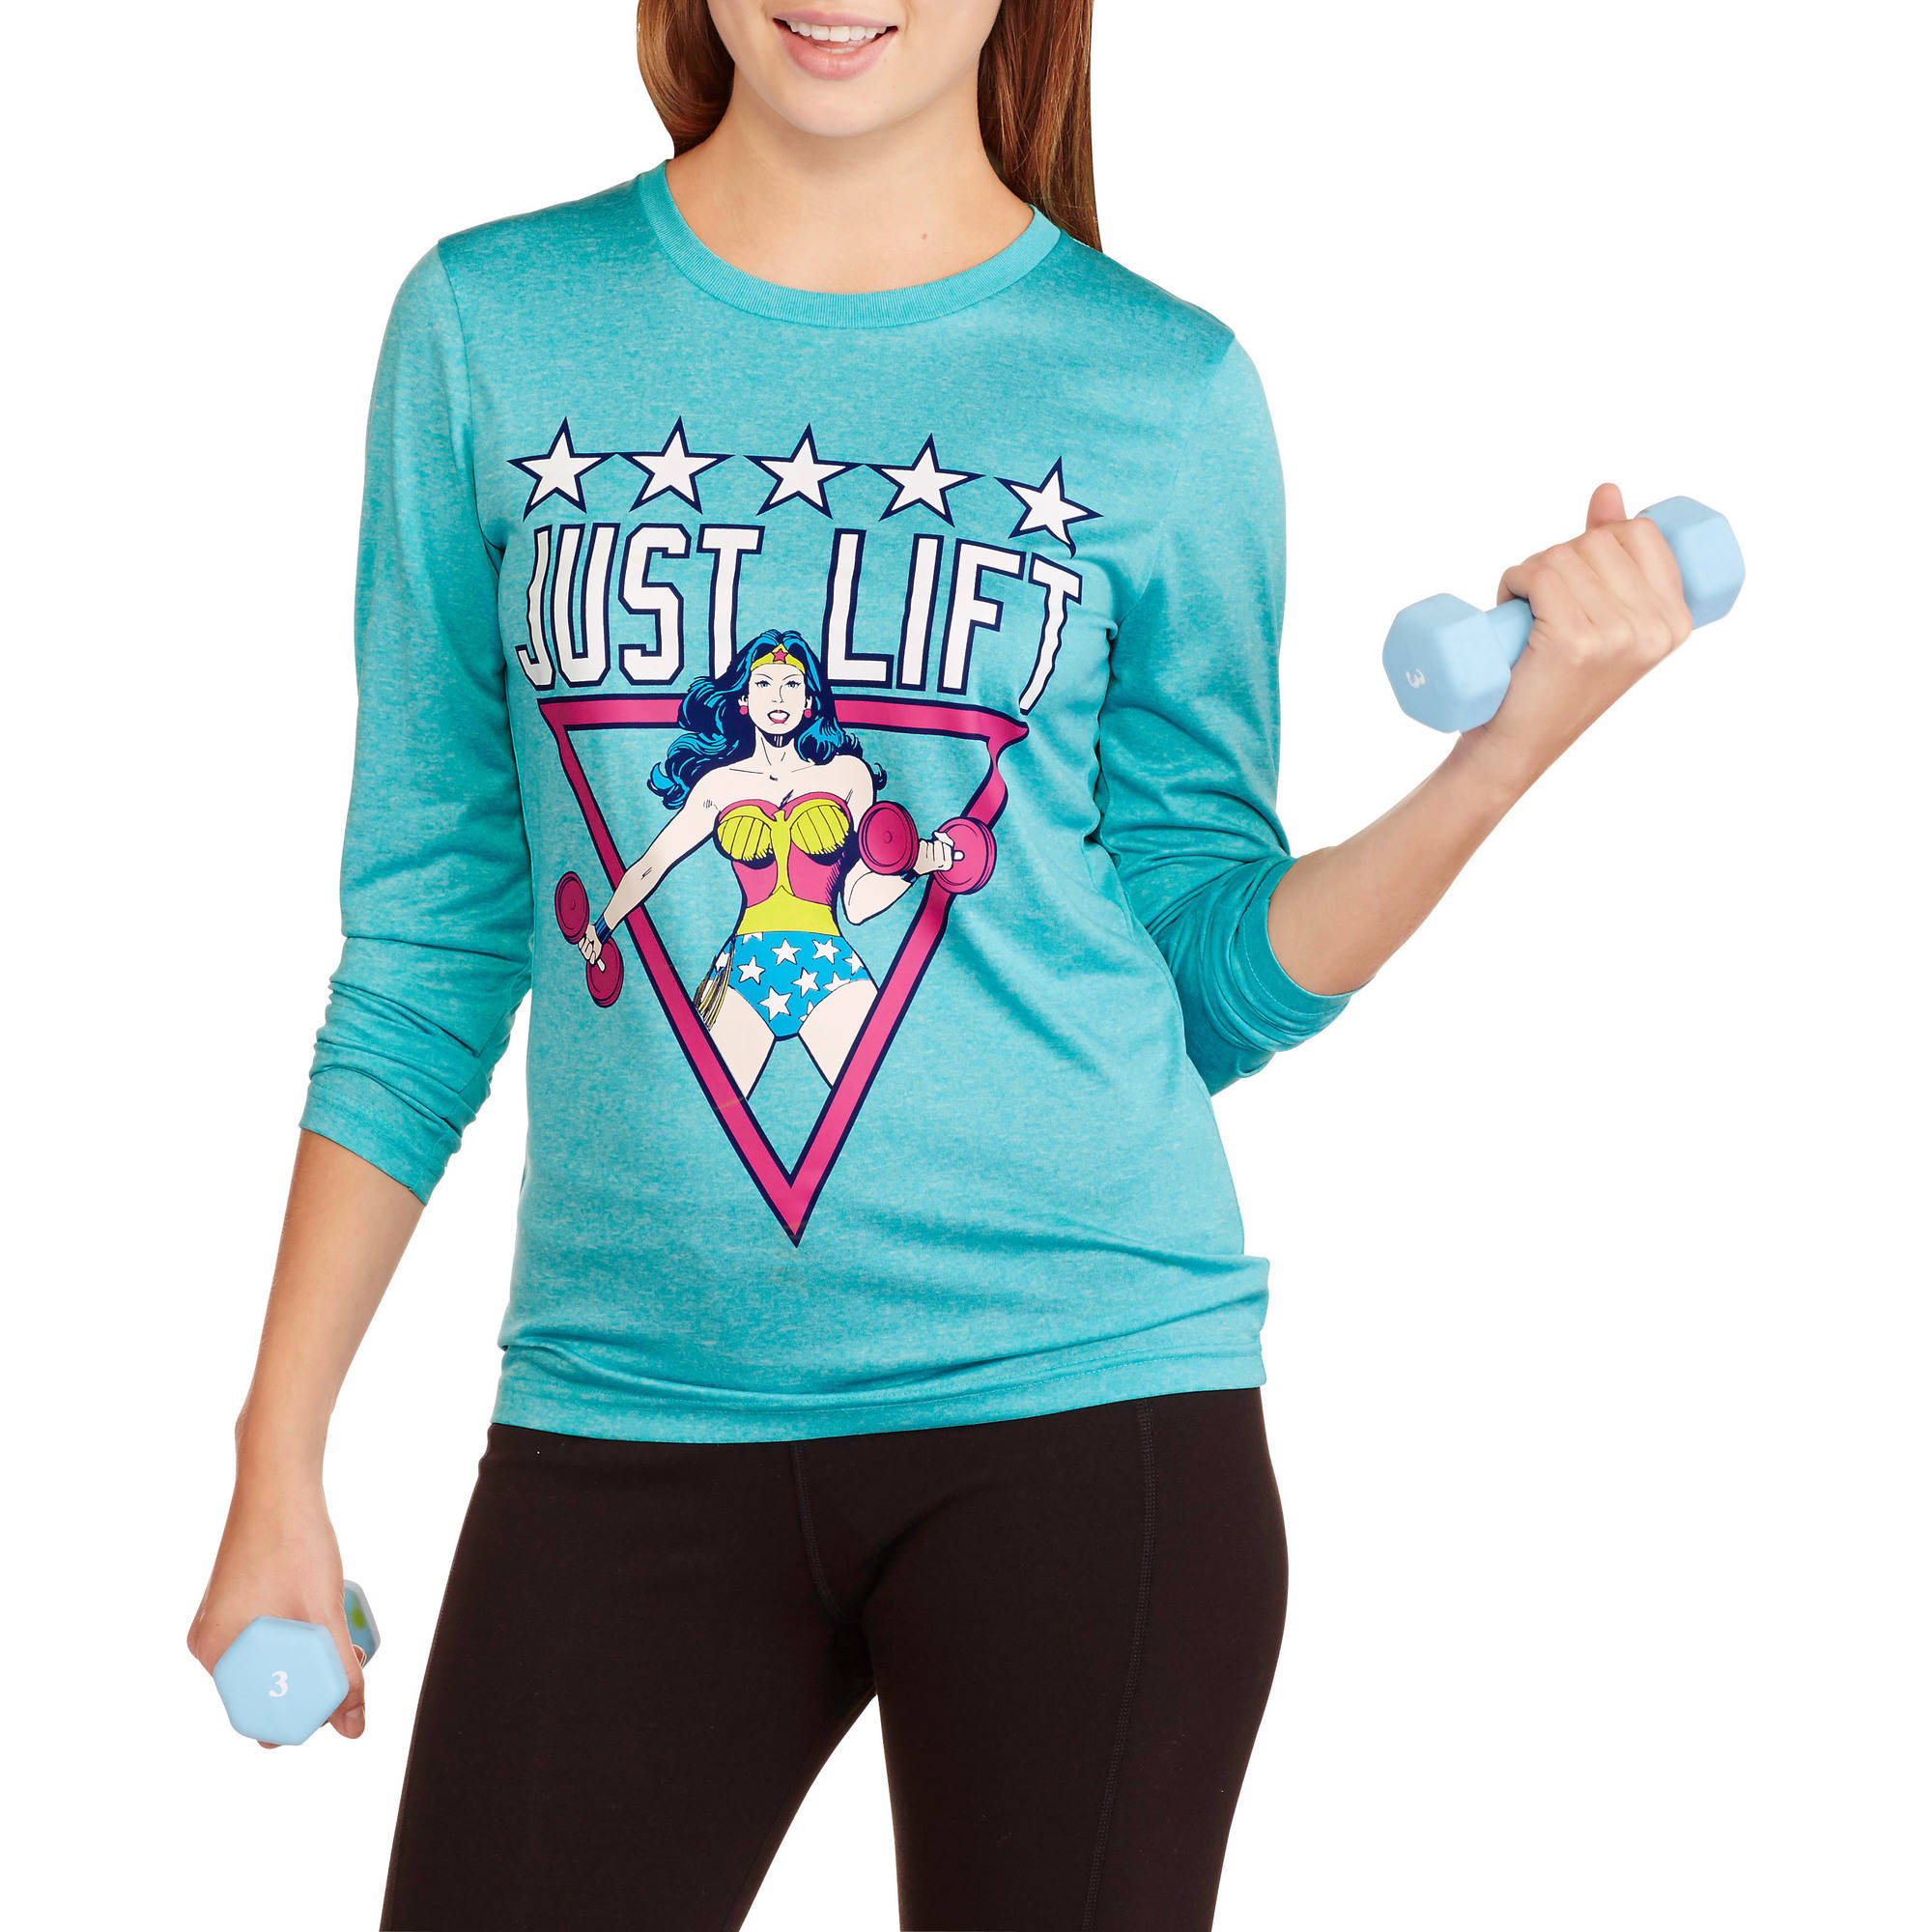 3657cf491c2f4 Long Sleeve Graphic Tees At Walmart – Rockwall Auction